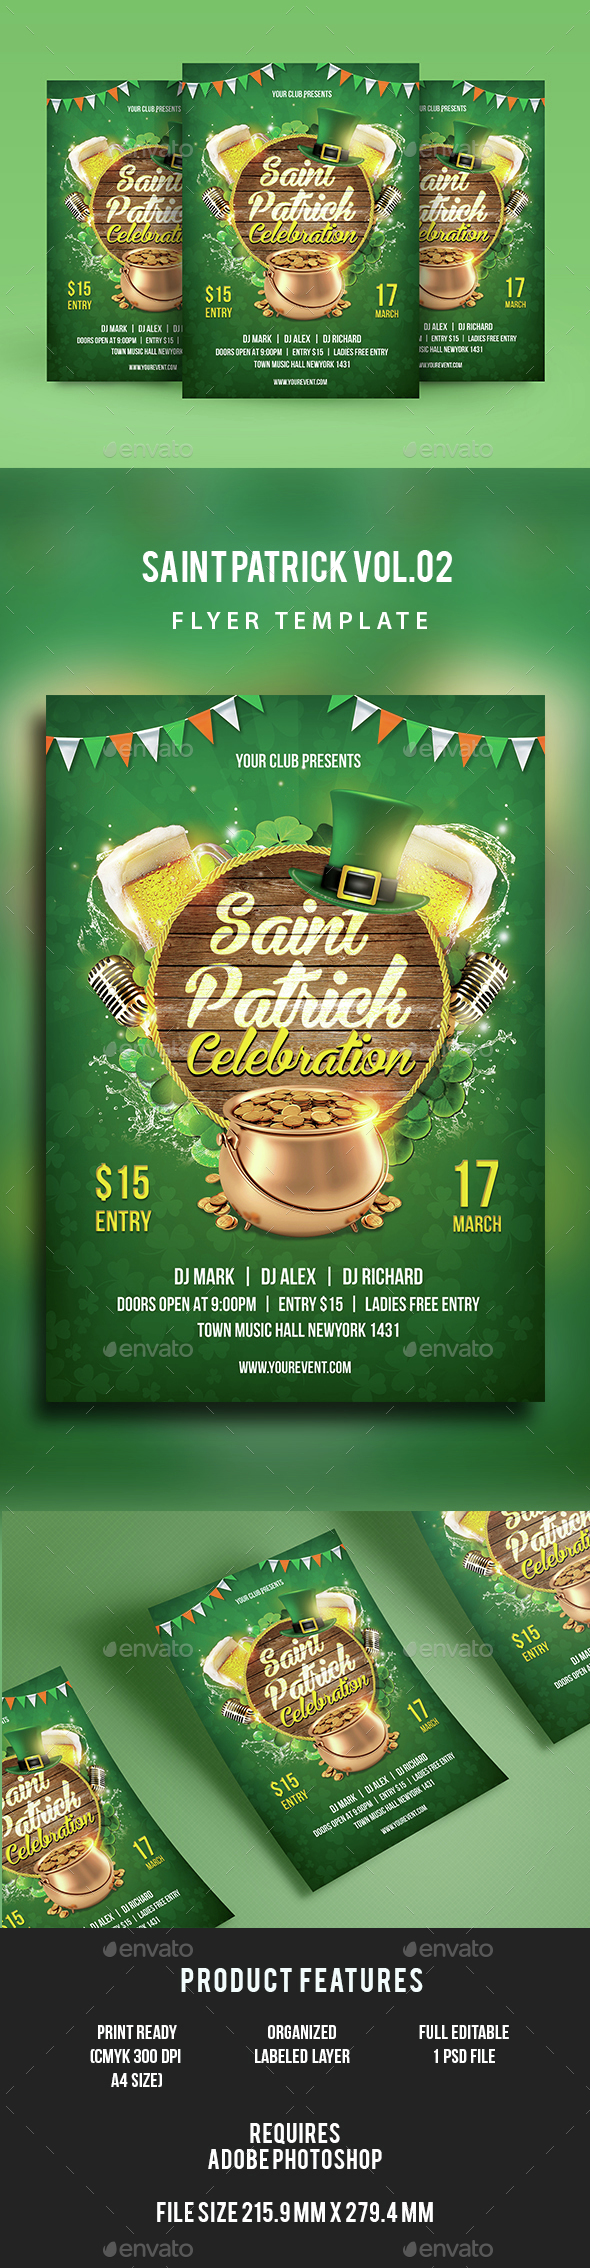 Saint Patrick Flyer Vol.02 - Events Flyers